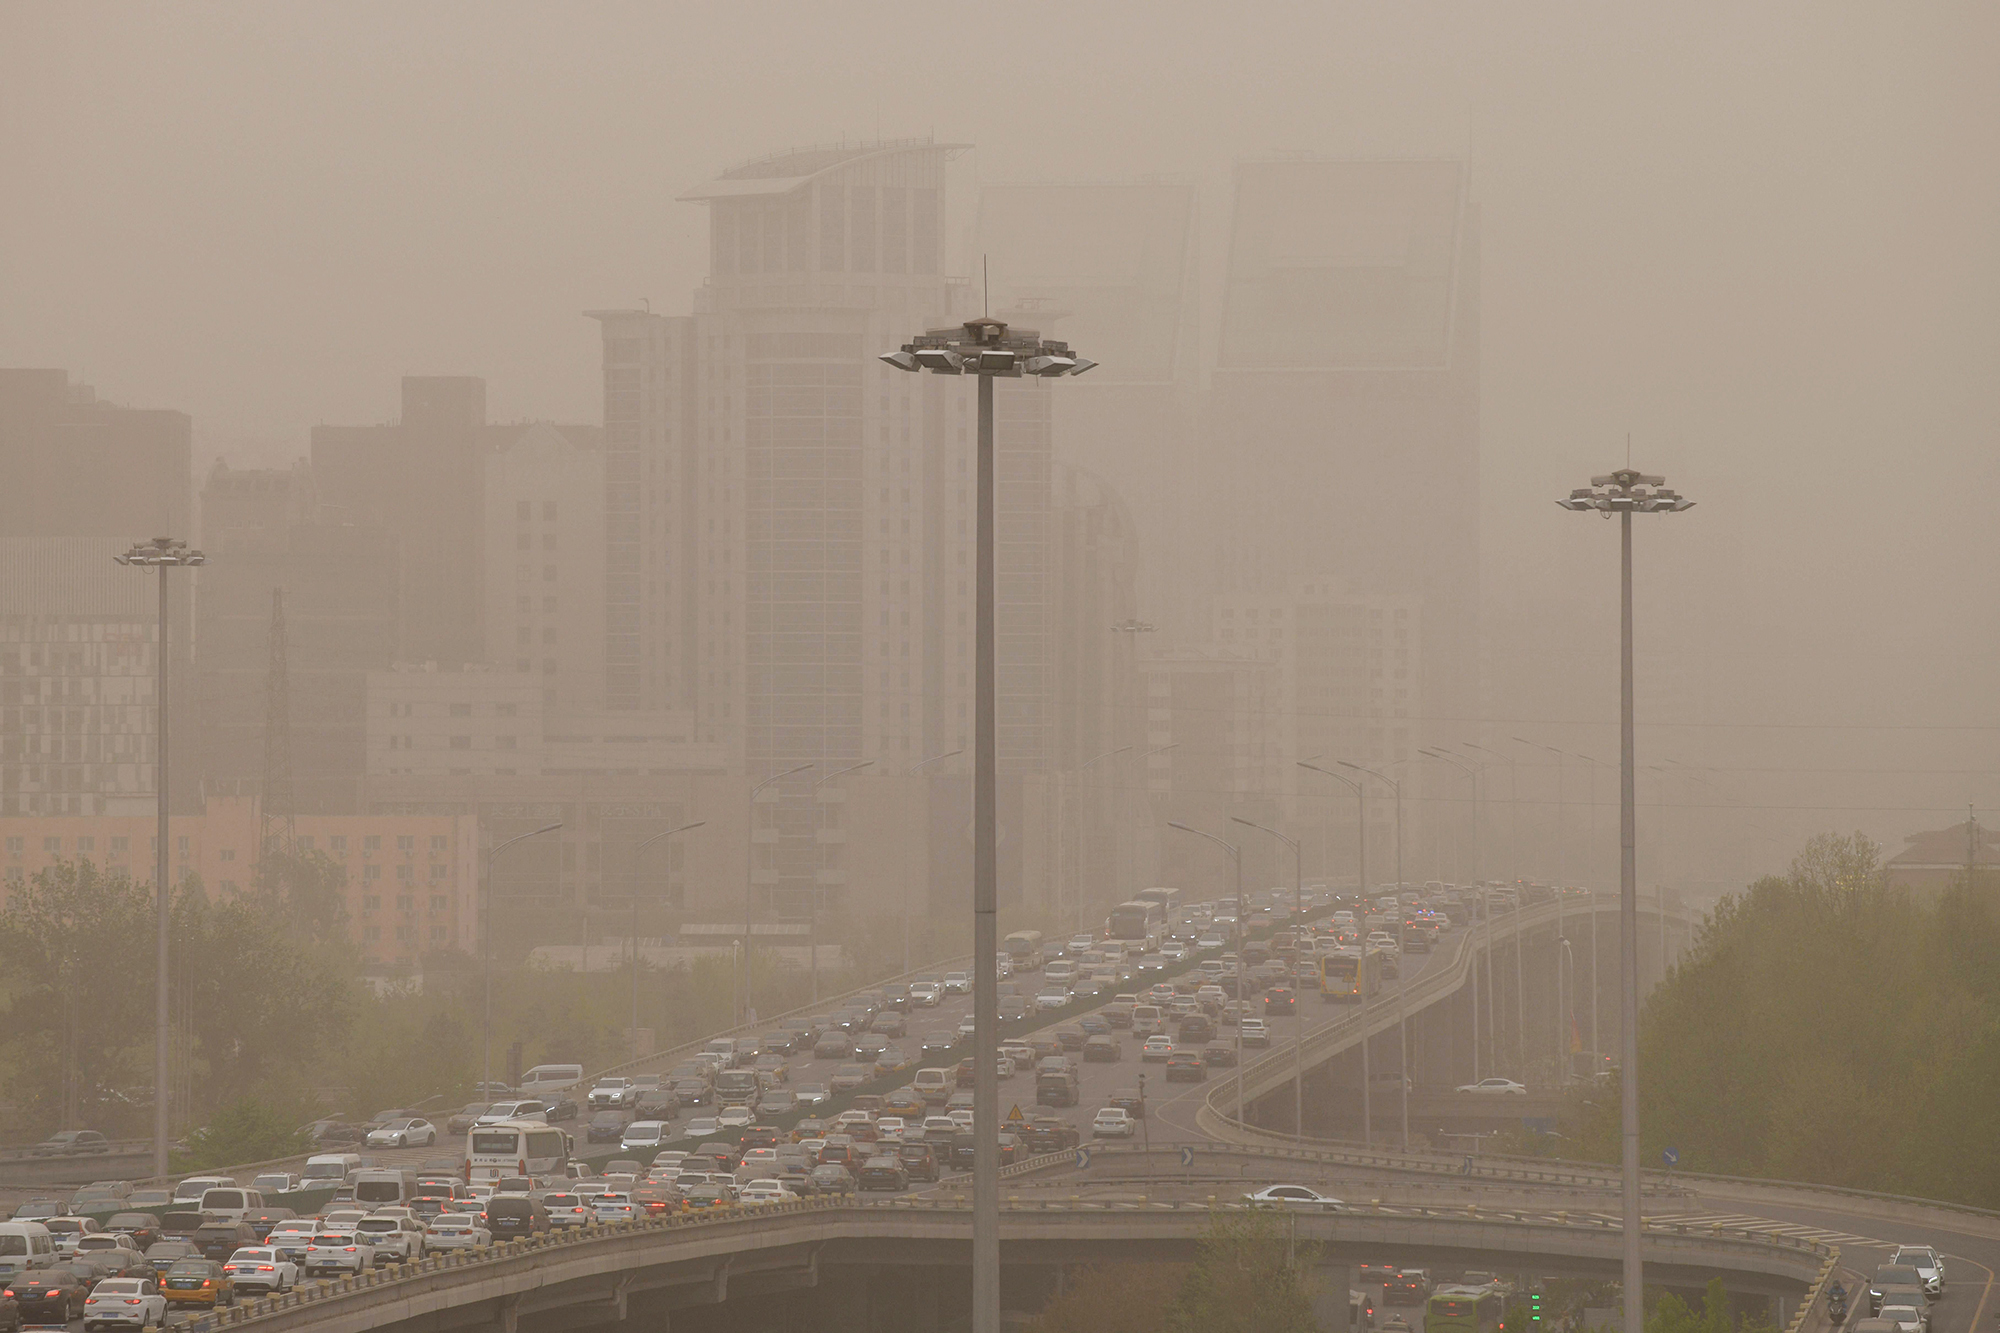 China's greenhouse gas emissions exceed rest of developed world...